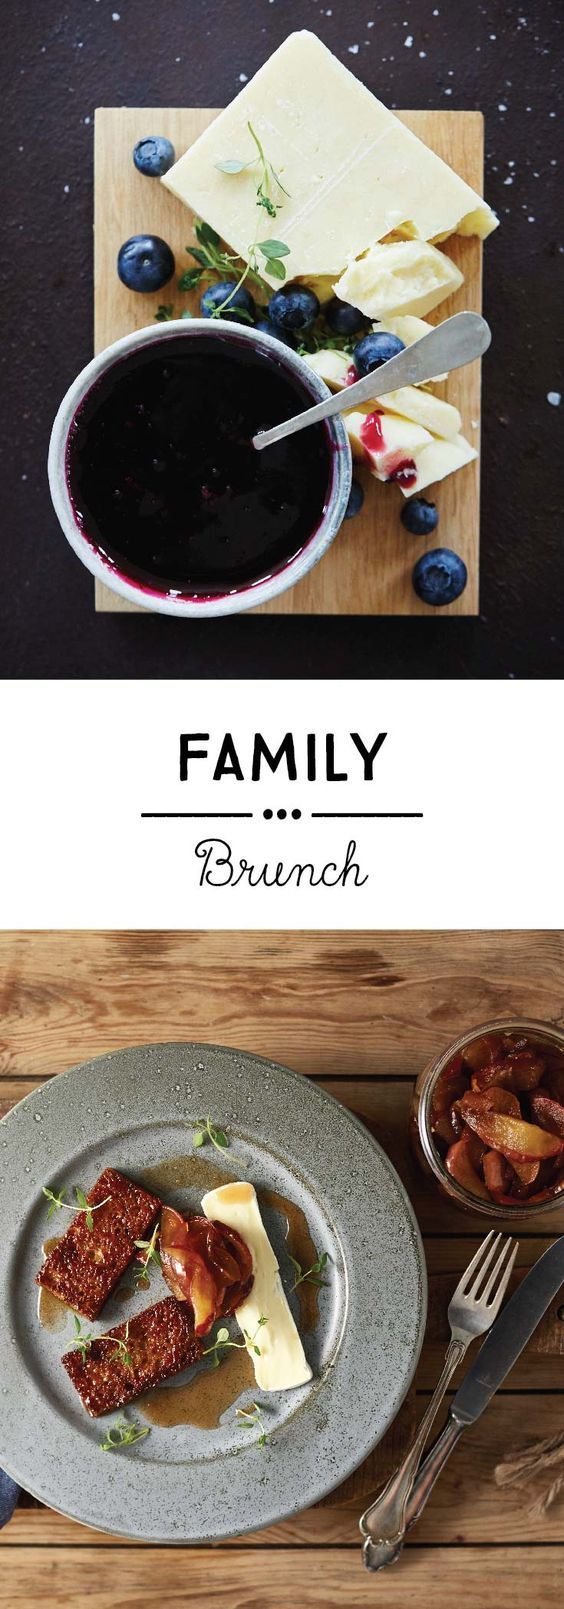 Treat your family to a homemade brunch this weekend! Our stress-free dishes and entertaining tips will make hosting brunch at your place a breeze.